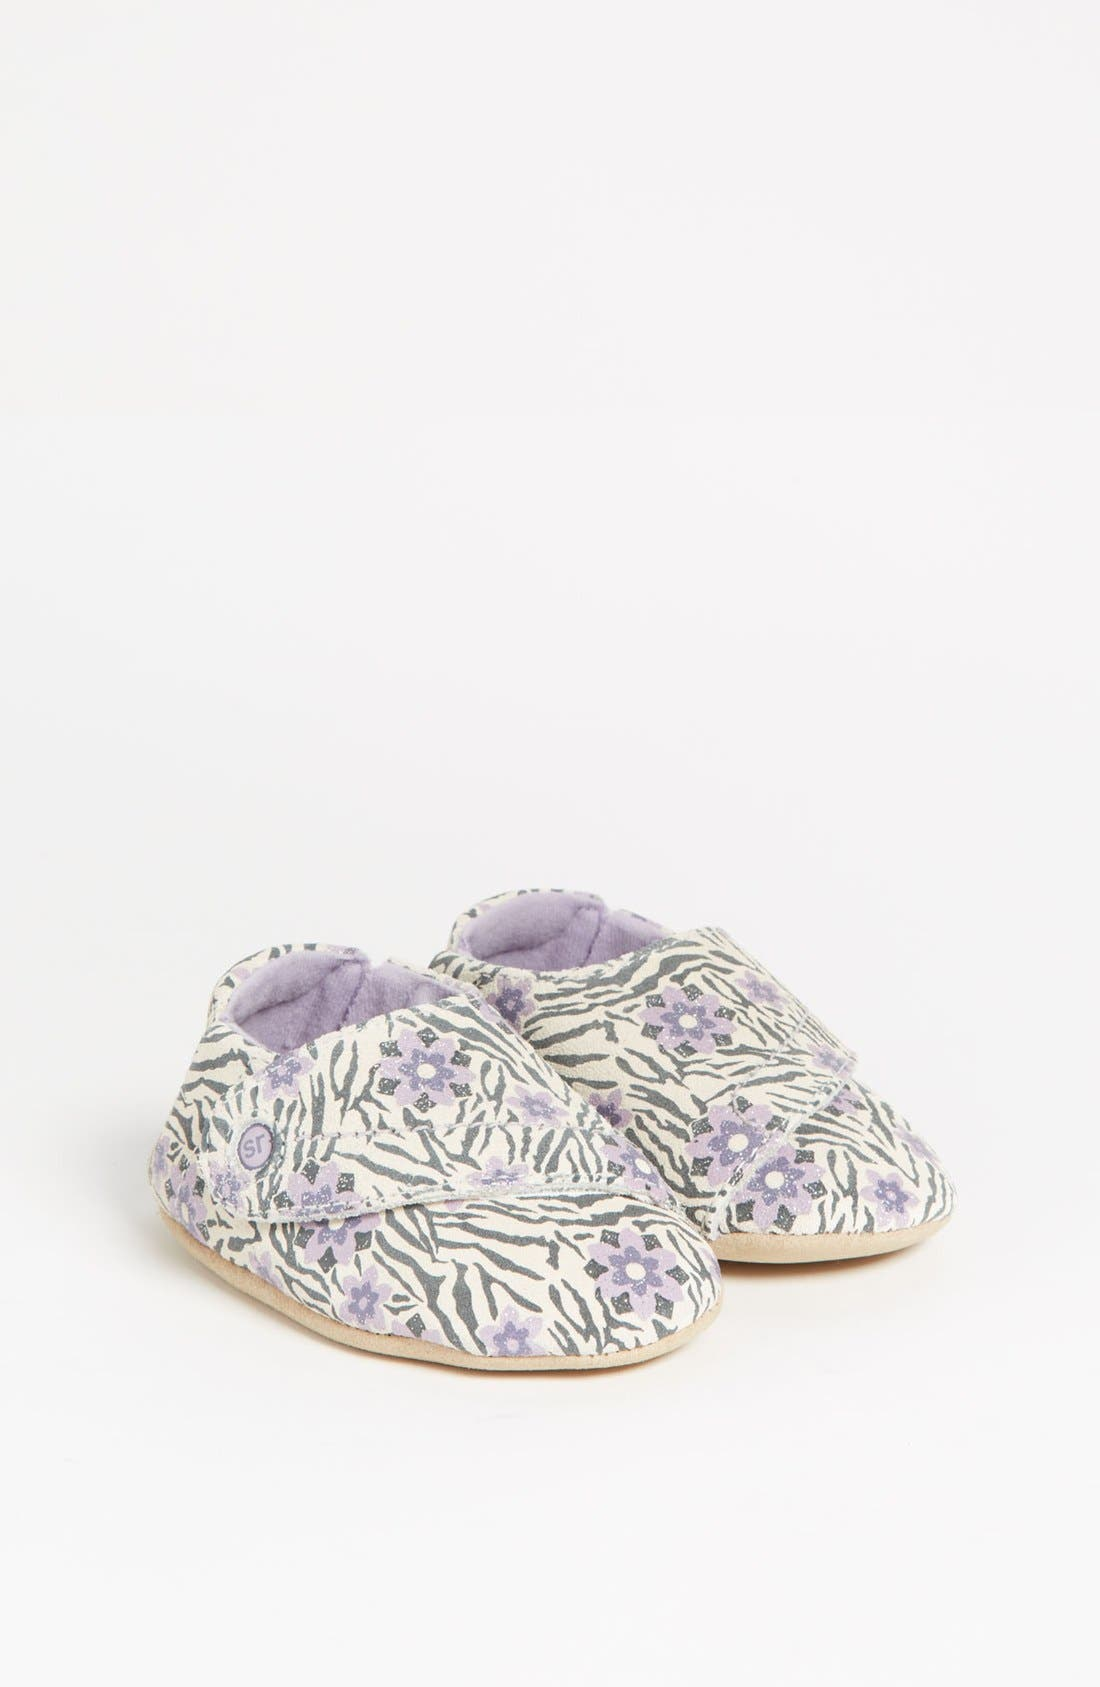 Alternate Image 1 Selected - Stride Rite 'Jungle Bloom' Crib Shoe (Baby) (Online Only)